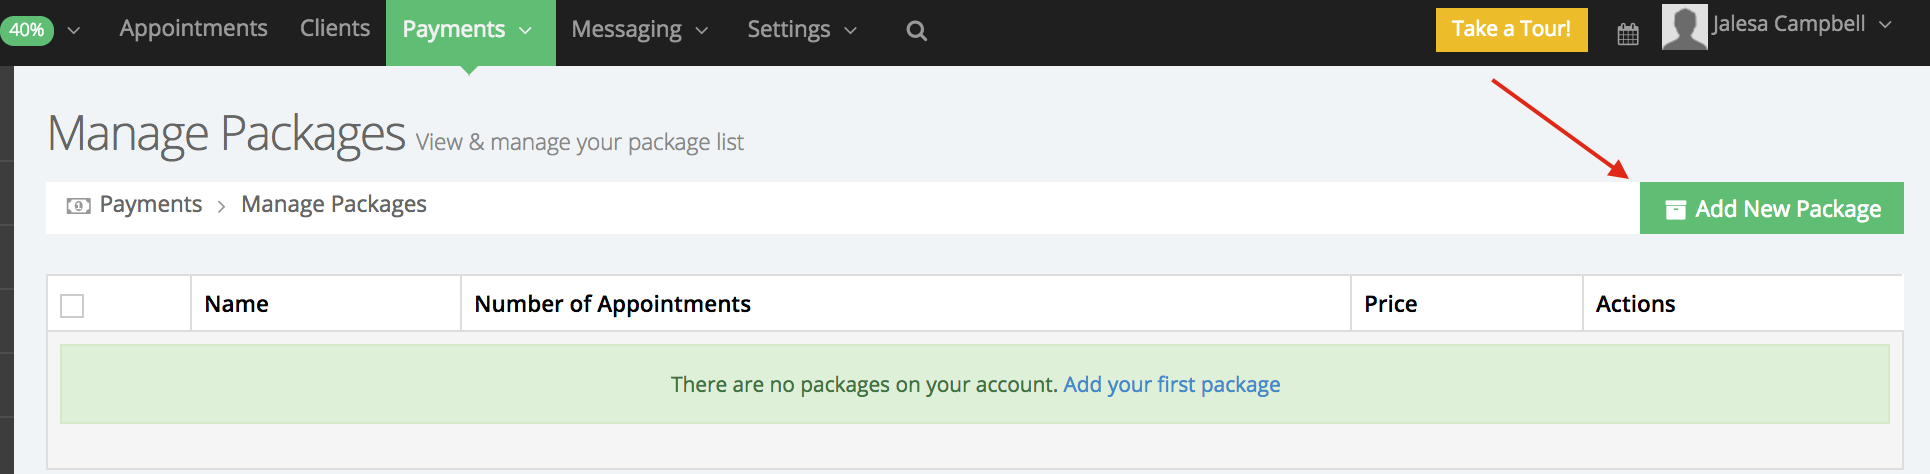 Create a new package